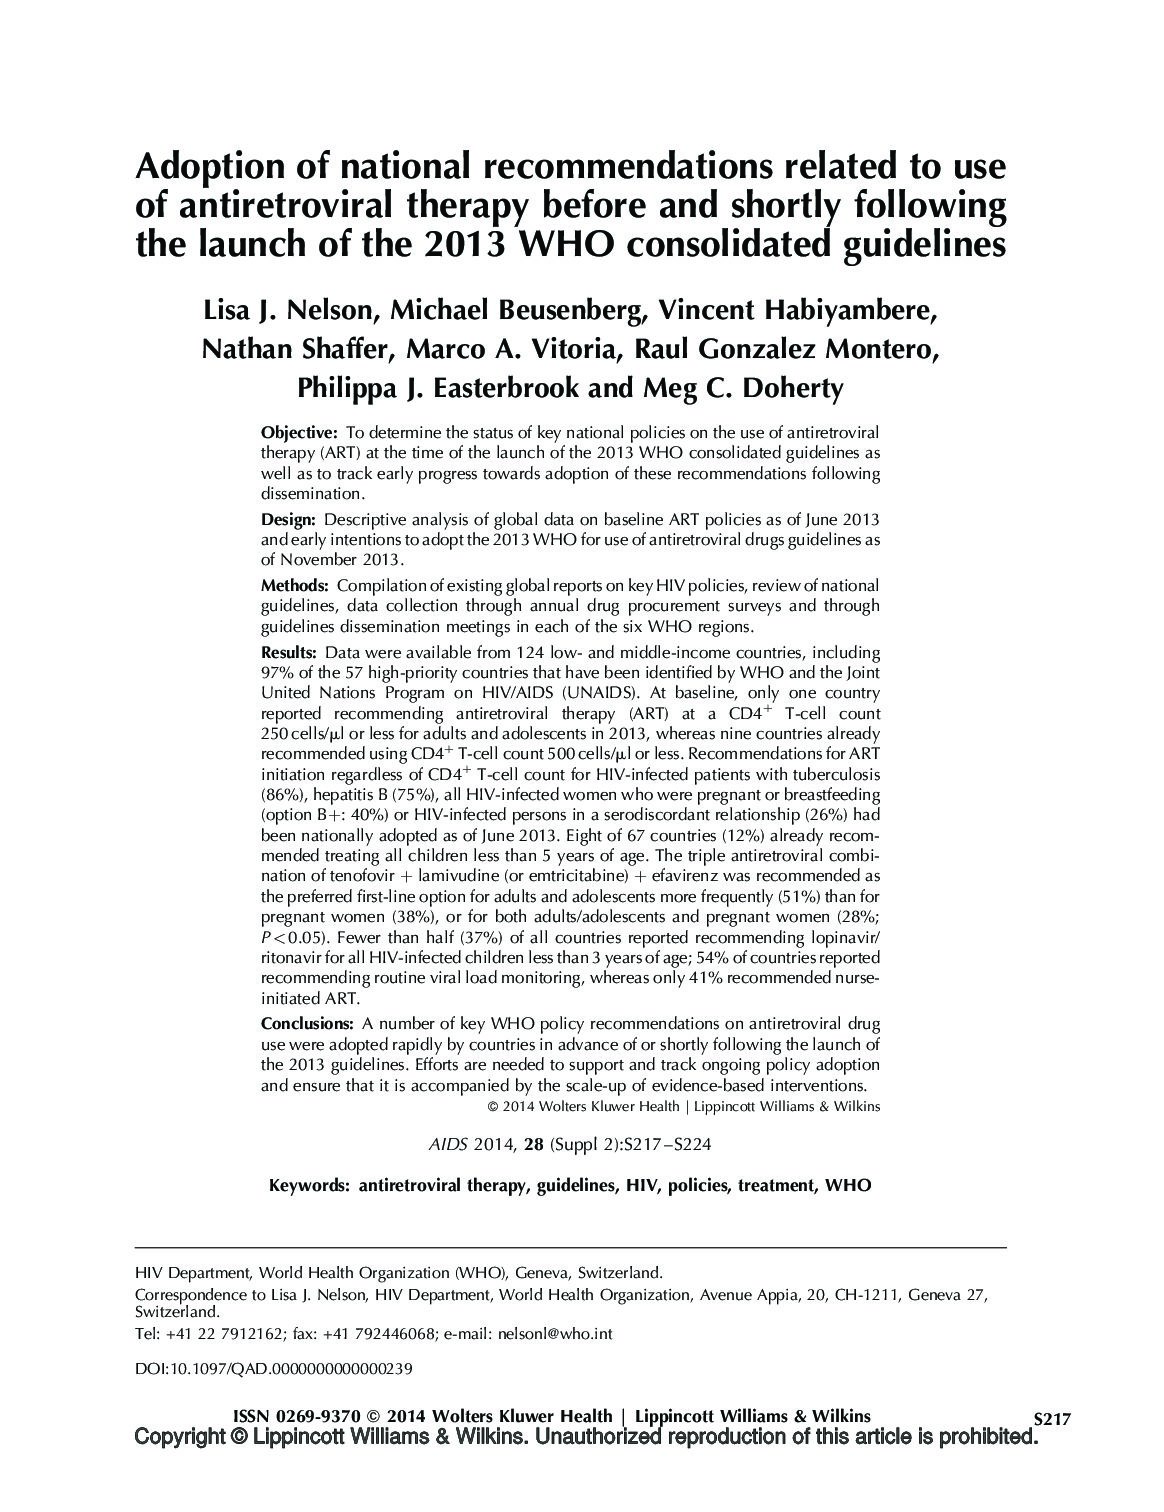 Adoption of national recommendations related to use of antiretroviral therapy before and shortly following the launch of the 2013 WHO consolidated guidelines.